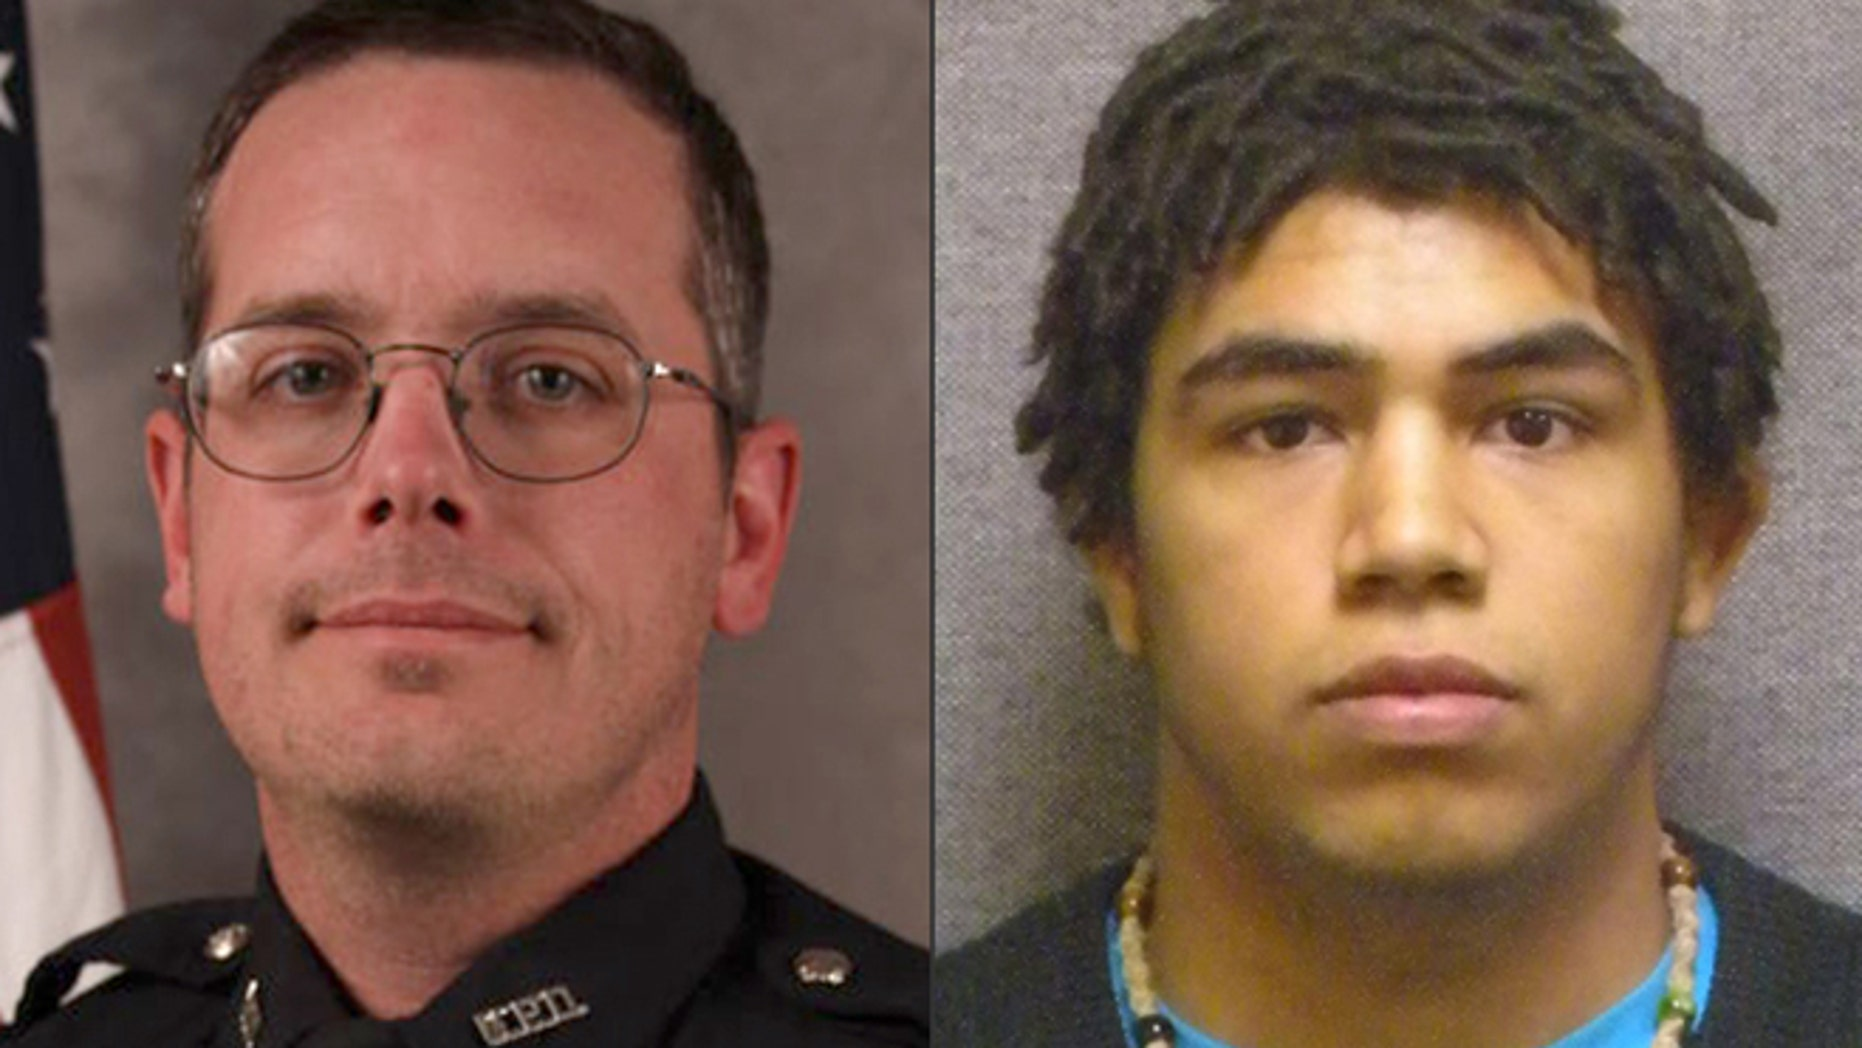 These file photos provided by the Madison, Wis. police department and Wisconsin Department of Corrections show Officer Matt Kenny, left, and shooting victim Tony Robinson.